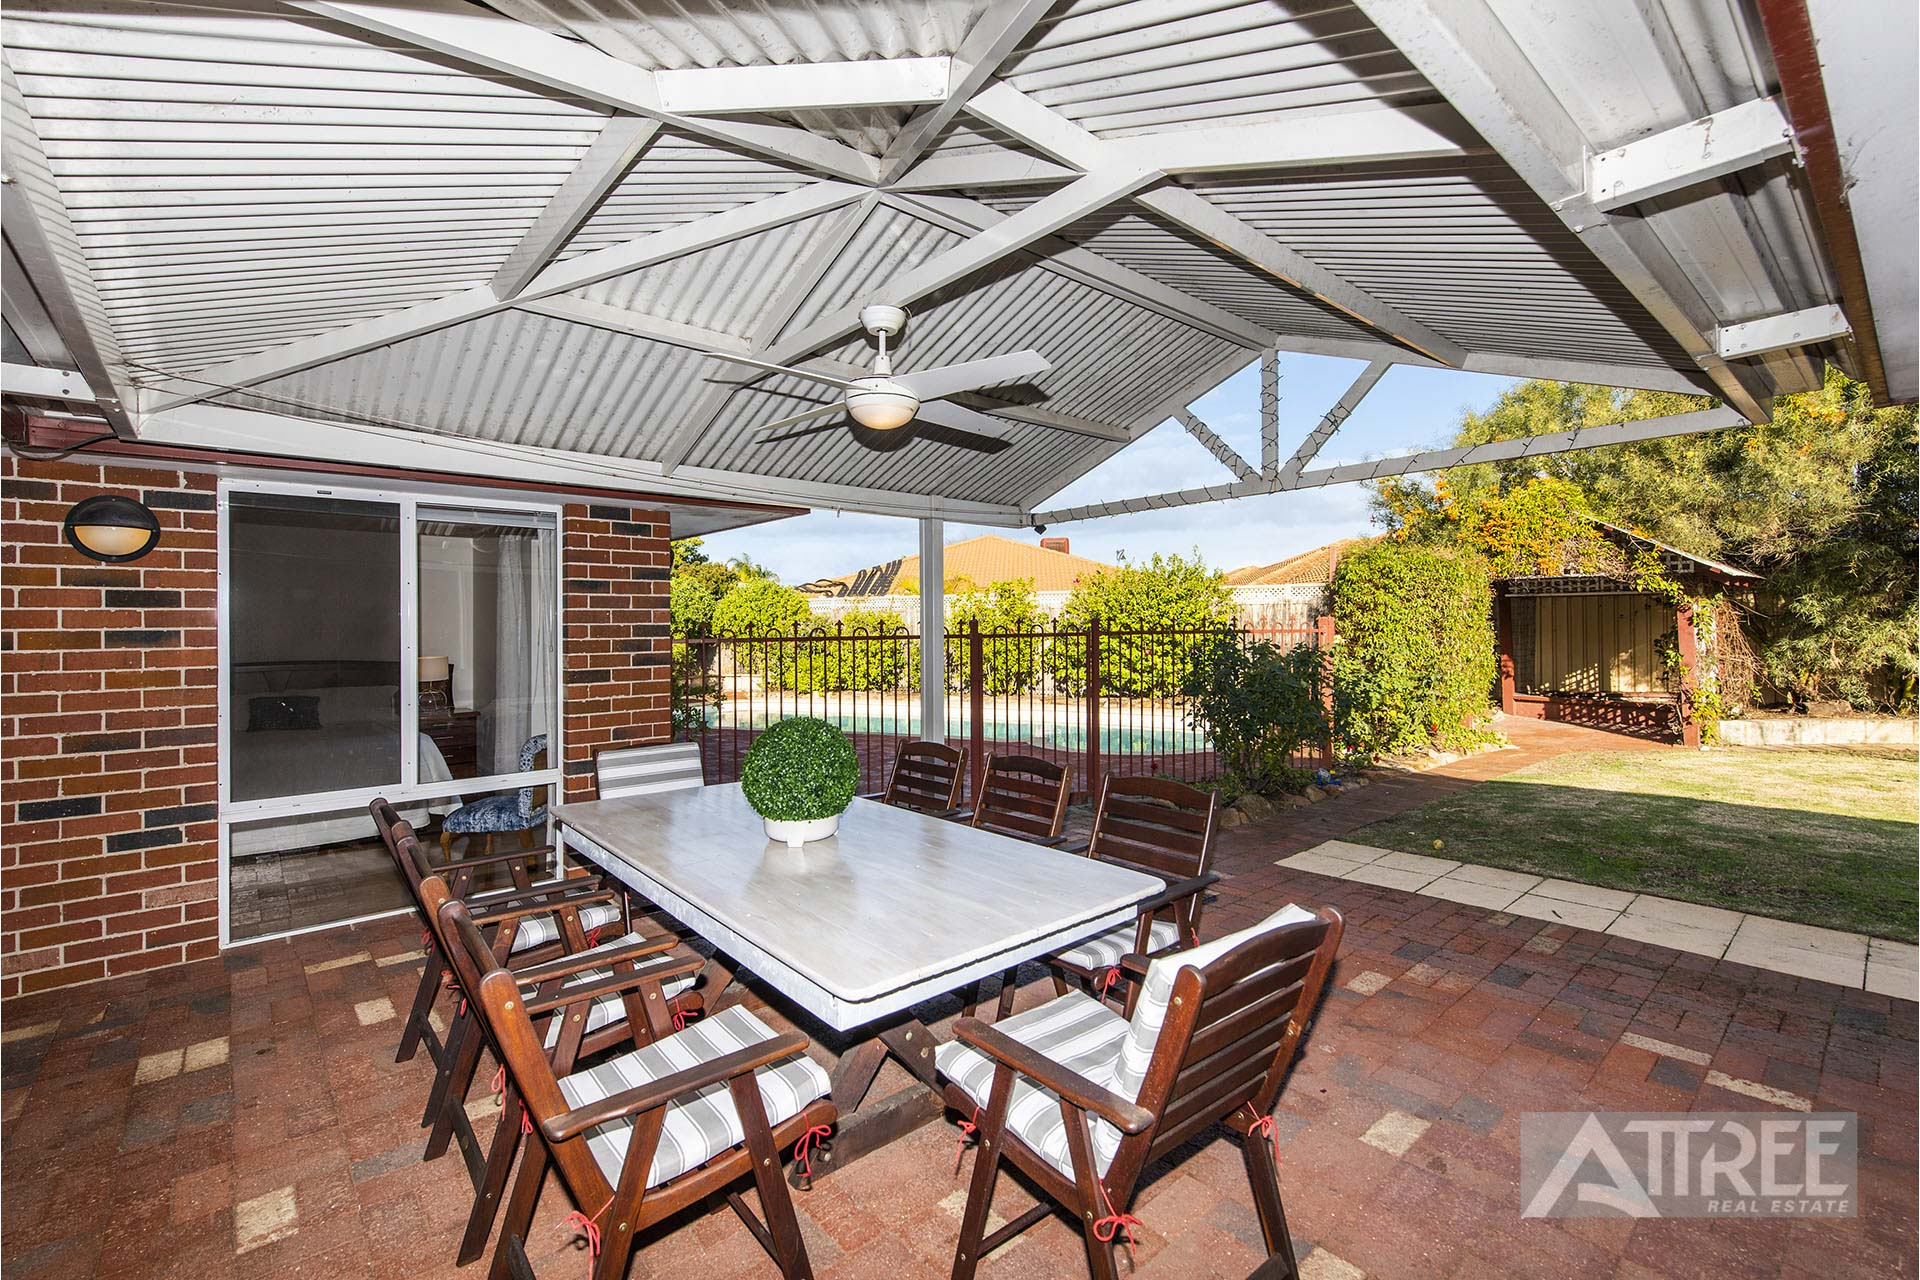 Property for sale in CANNING VALE, 5 Baychester Circle : Attree Real Estate